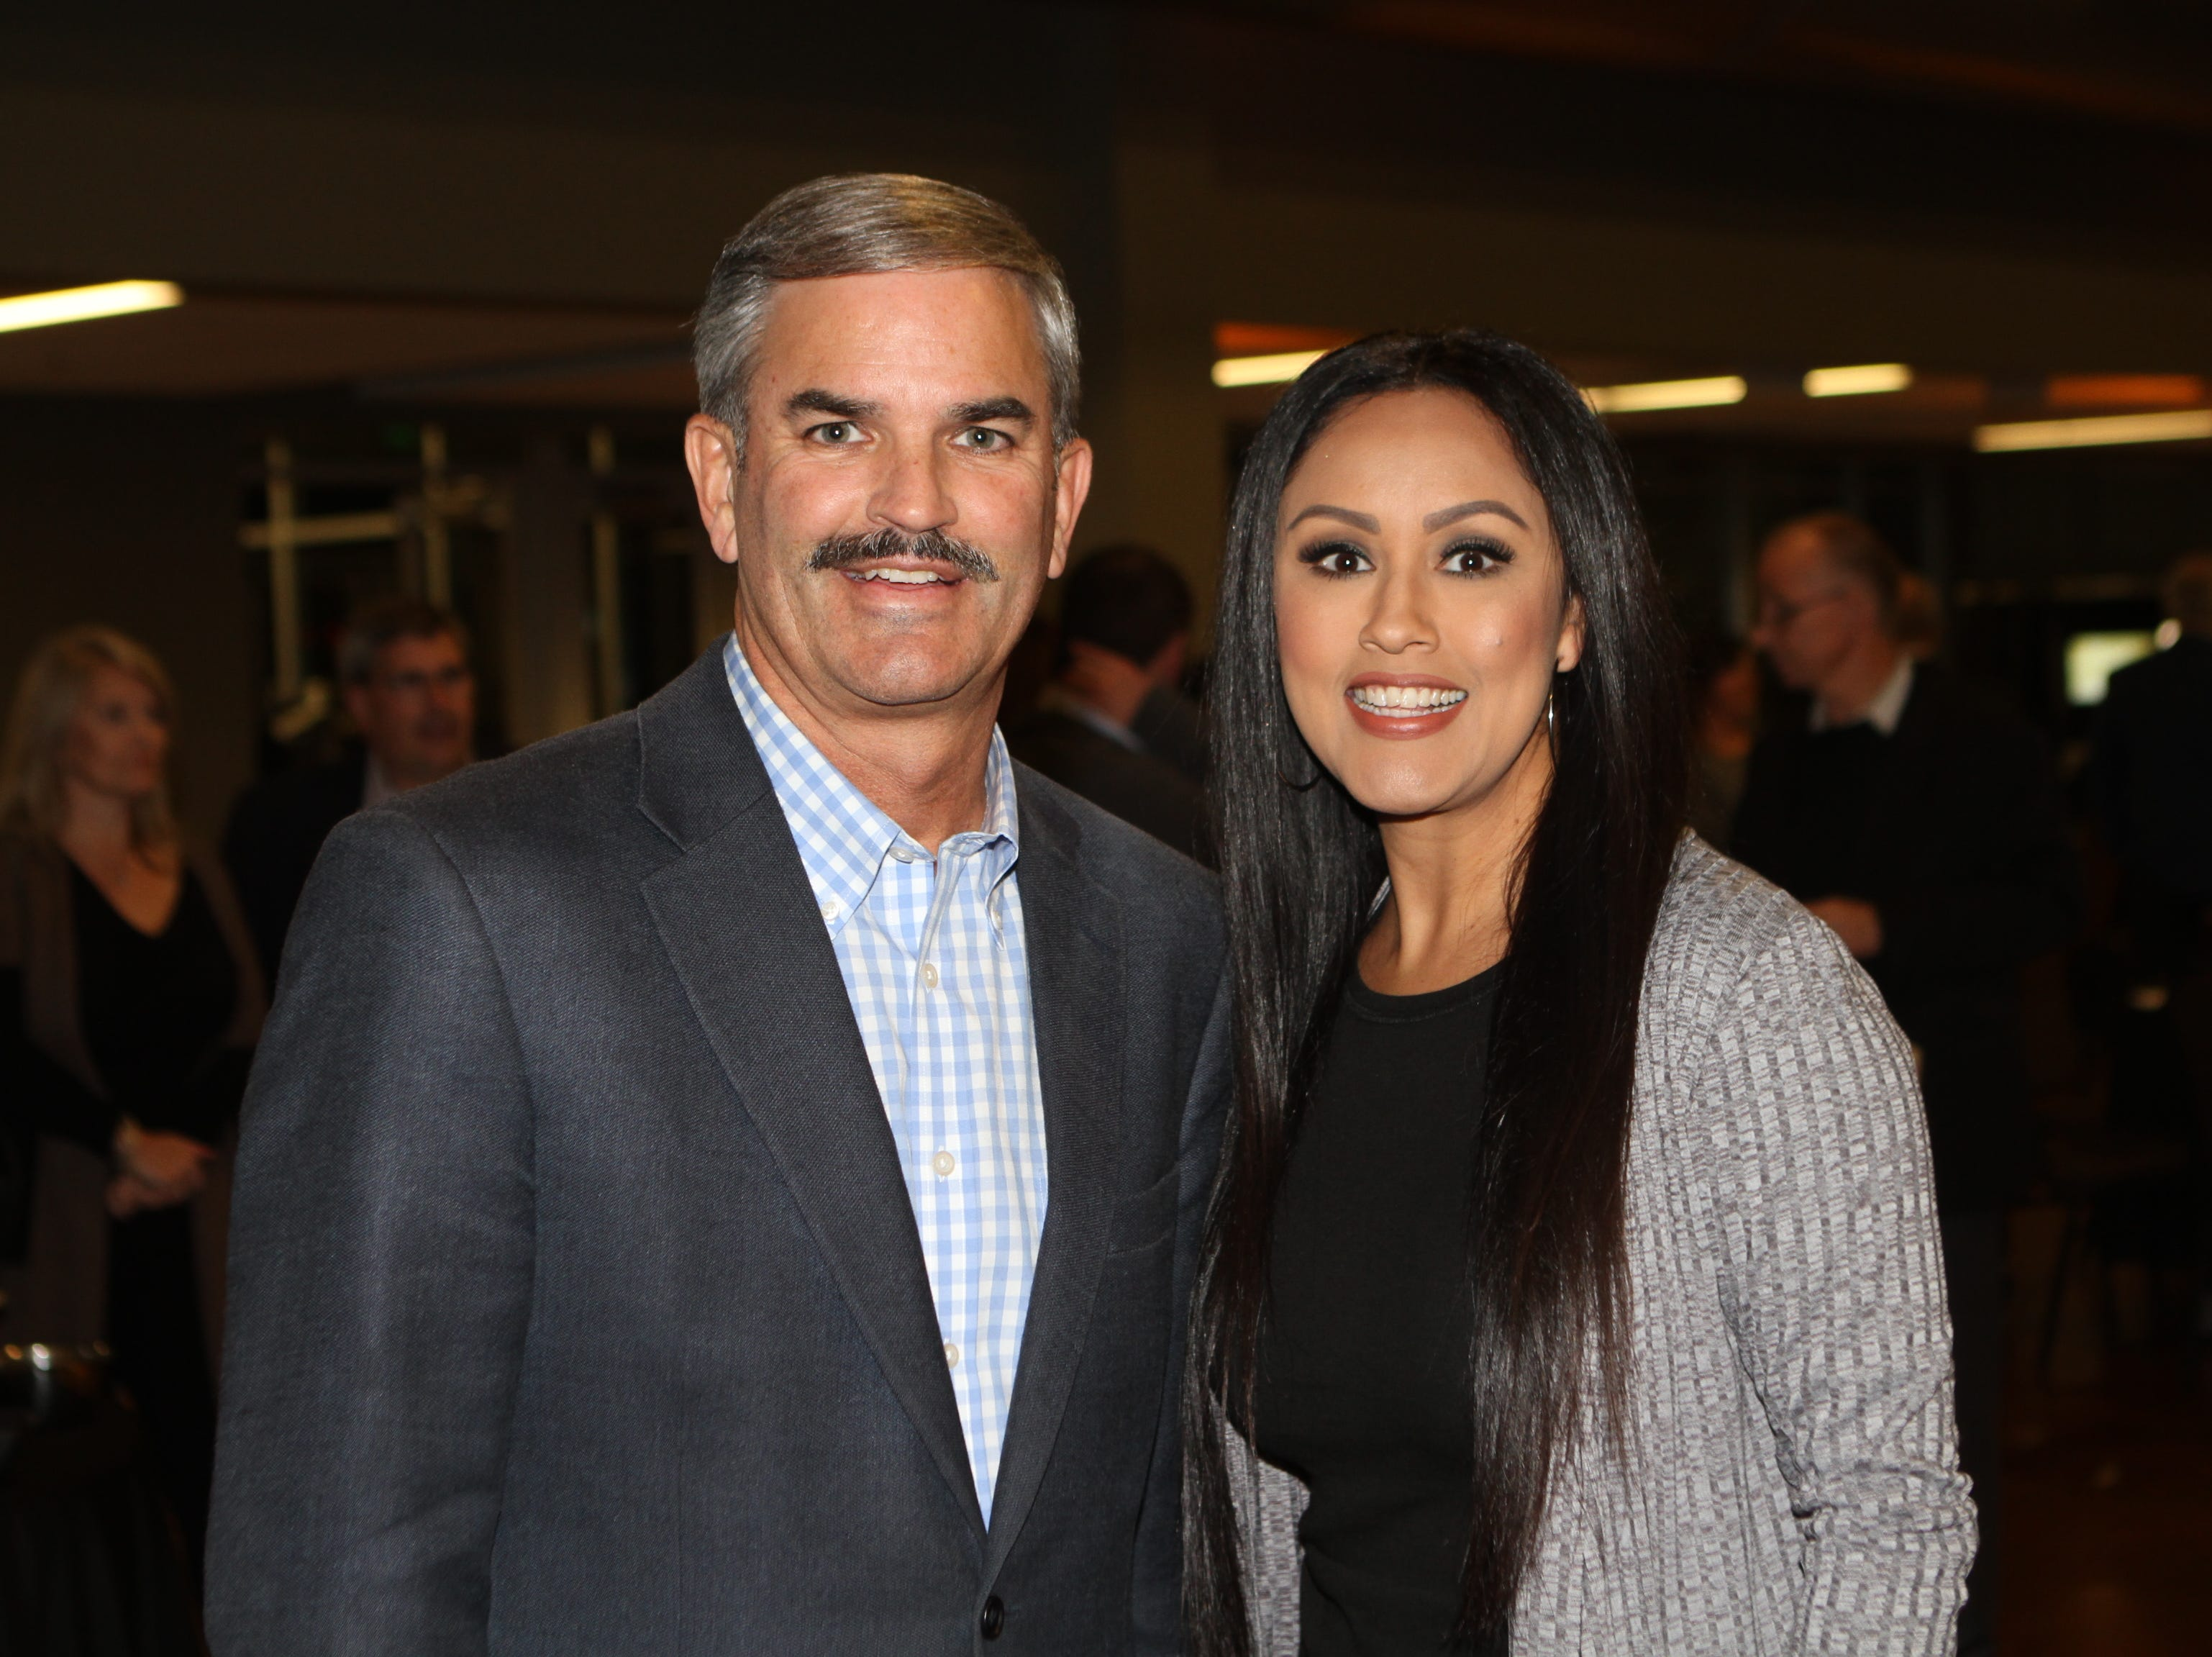 Charlie Koon and Lillie Millan at CMC Education Foundation's annual fundraiser Vision to Reality on Friday, November 2, 2018